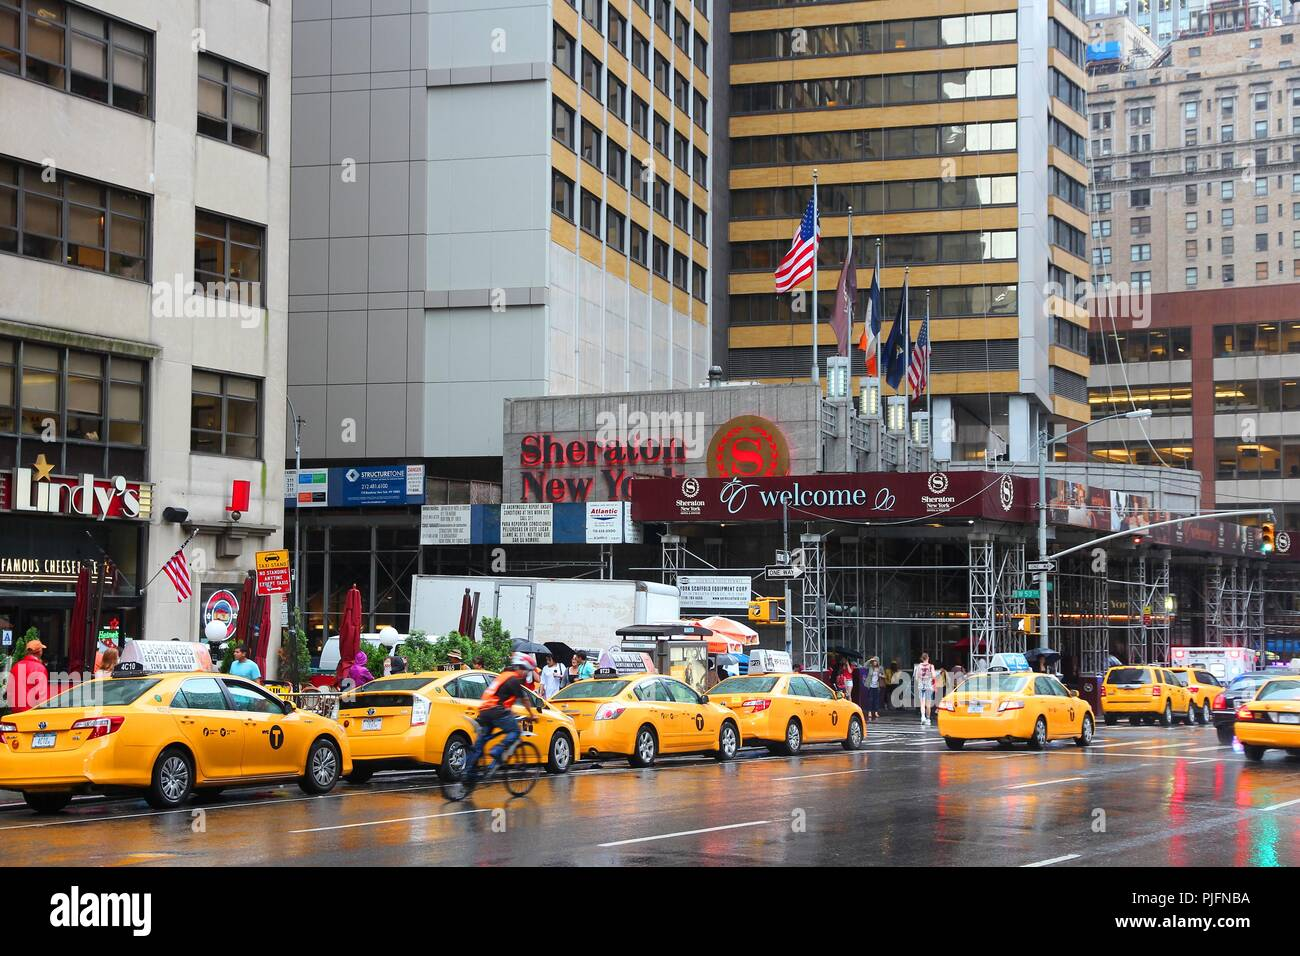 NEW YORK, USA - JULY 1, 2013: People walk along taxi filled 7th Avenue in New York.  As of 2012 there were 13,237 yellow taxi cabs registered in New Y Stock Photo